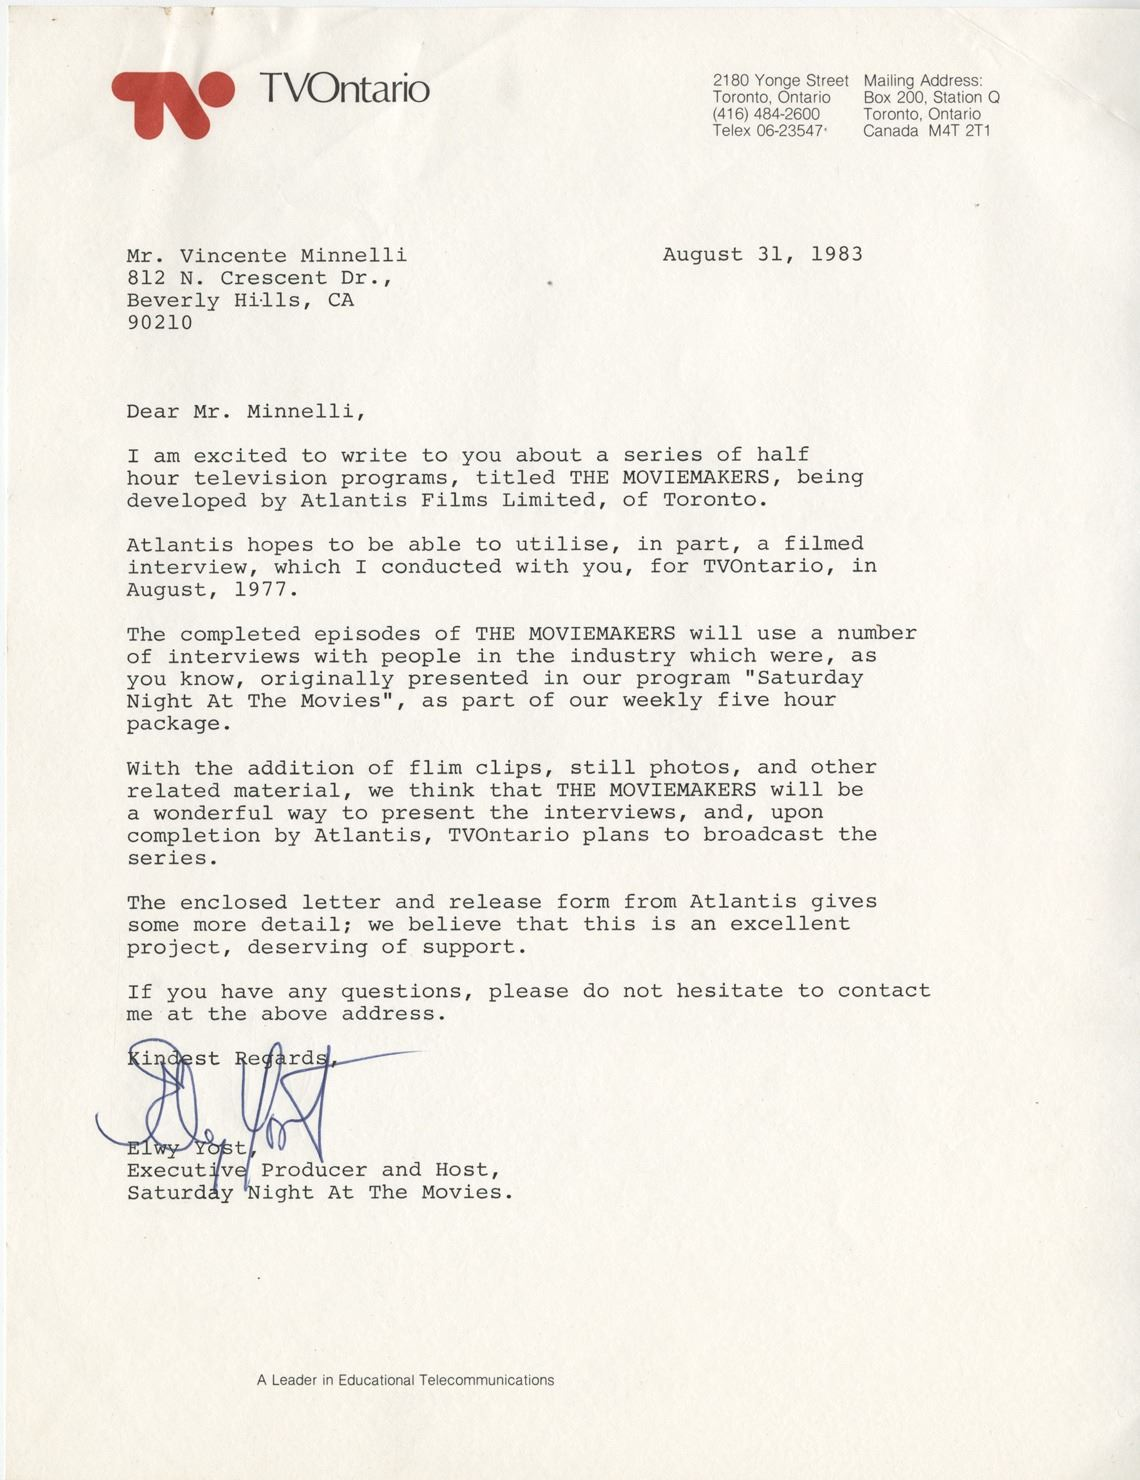 Vincente Minnelli (5) signed letters and documents